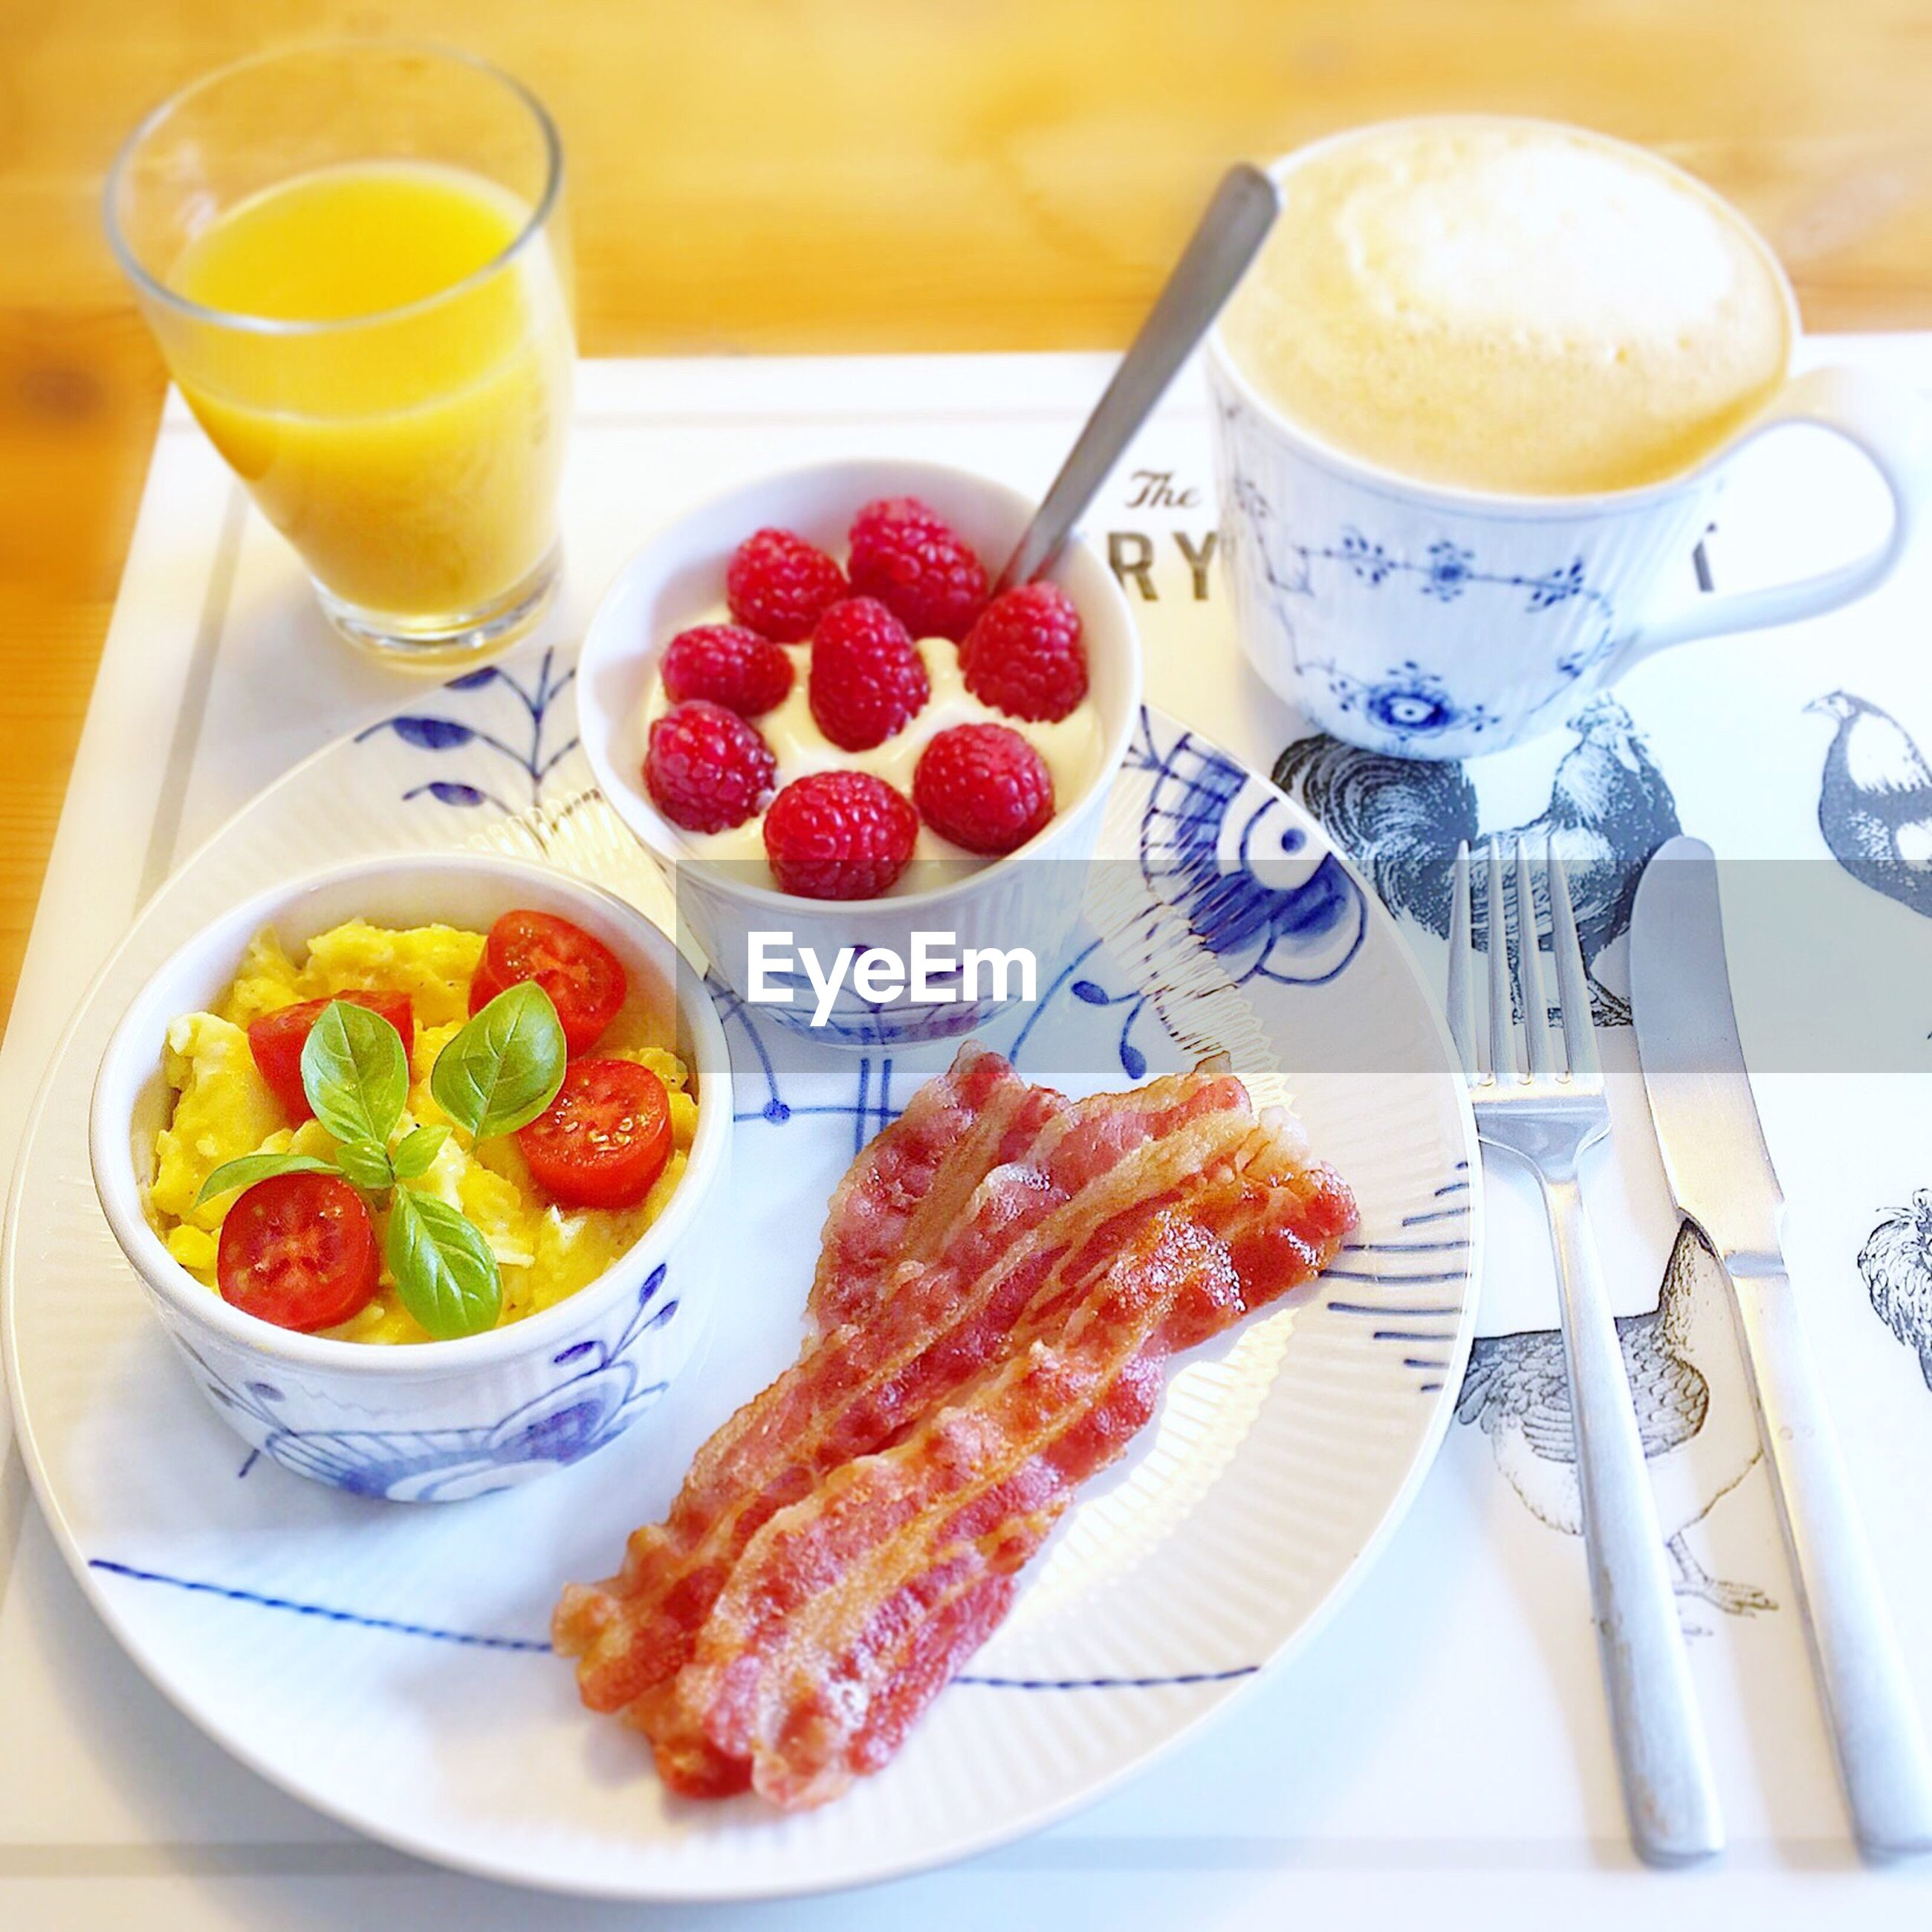 food and drink, plate, food, breakfast, orange juice, freshness, healthy eating, drink, drinking glass, table, indoors, no people, serving size, meal, bowl, ready-to-eat, close-up, day